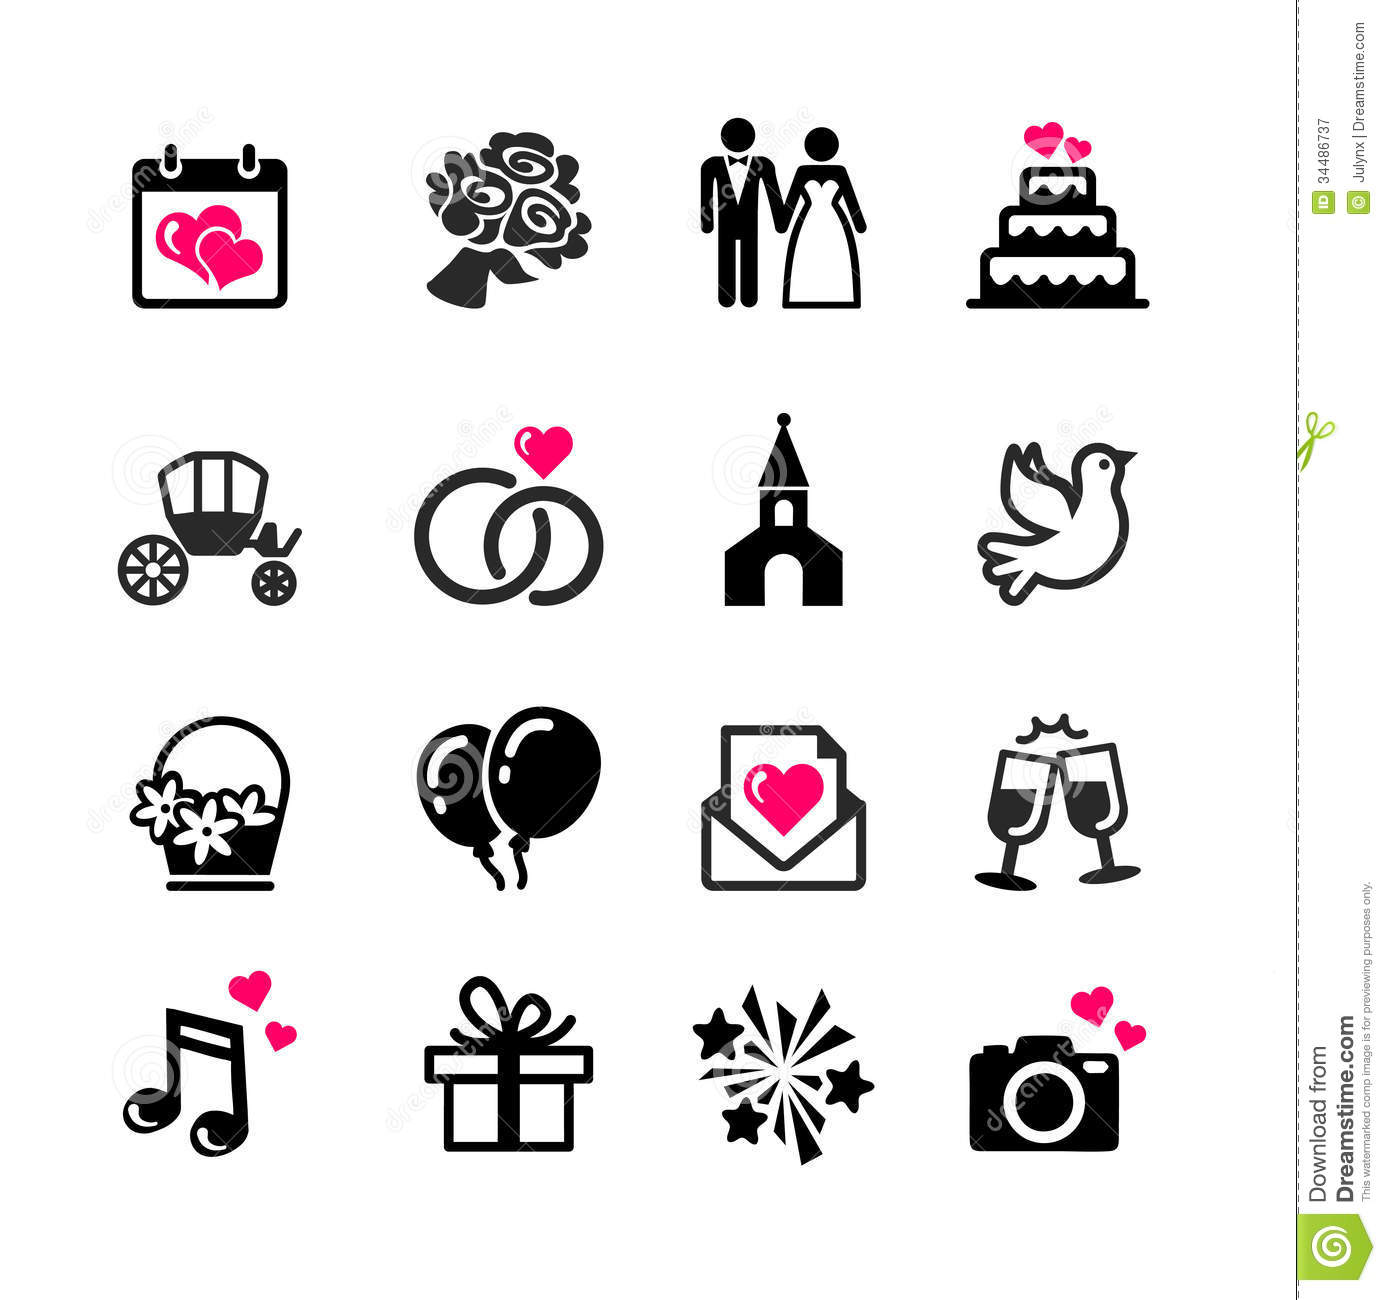 Free Black And White Bride And Groom Clipart